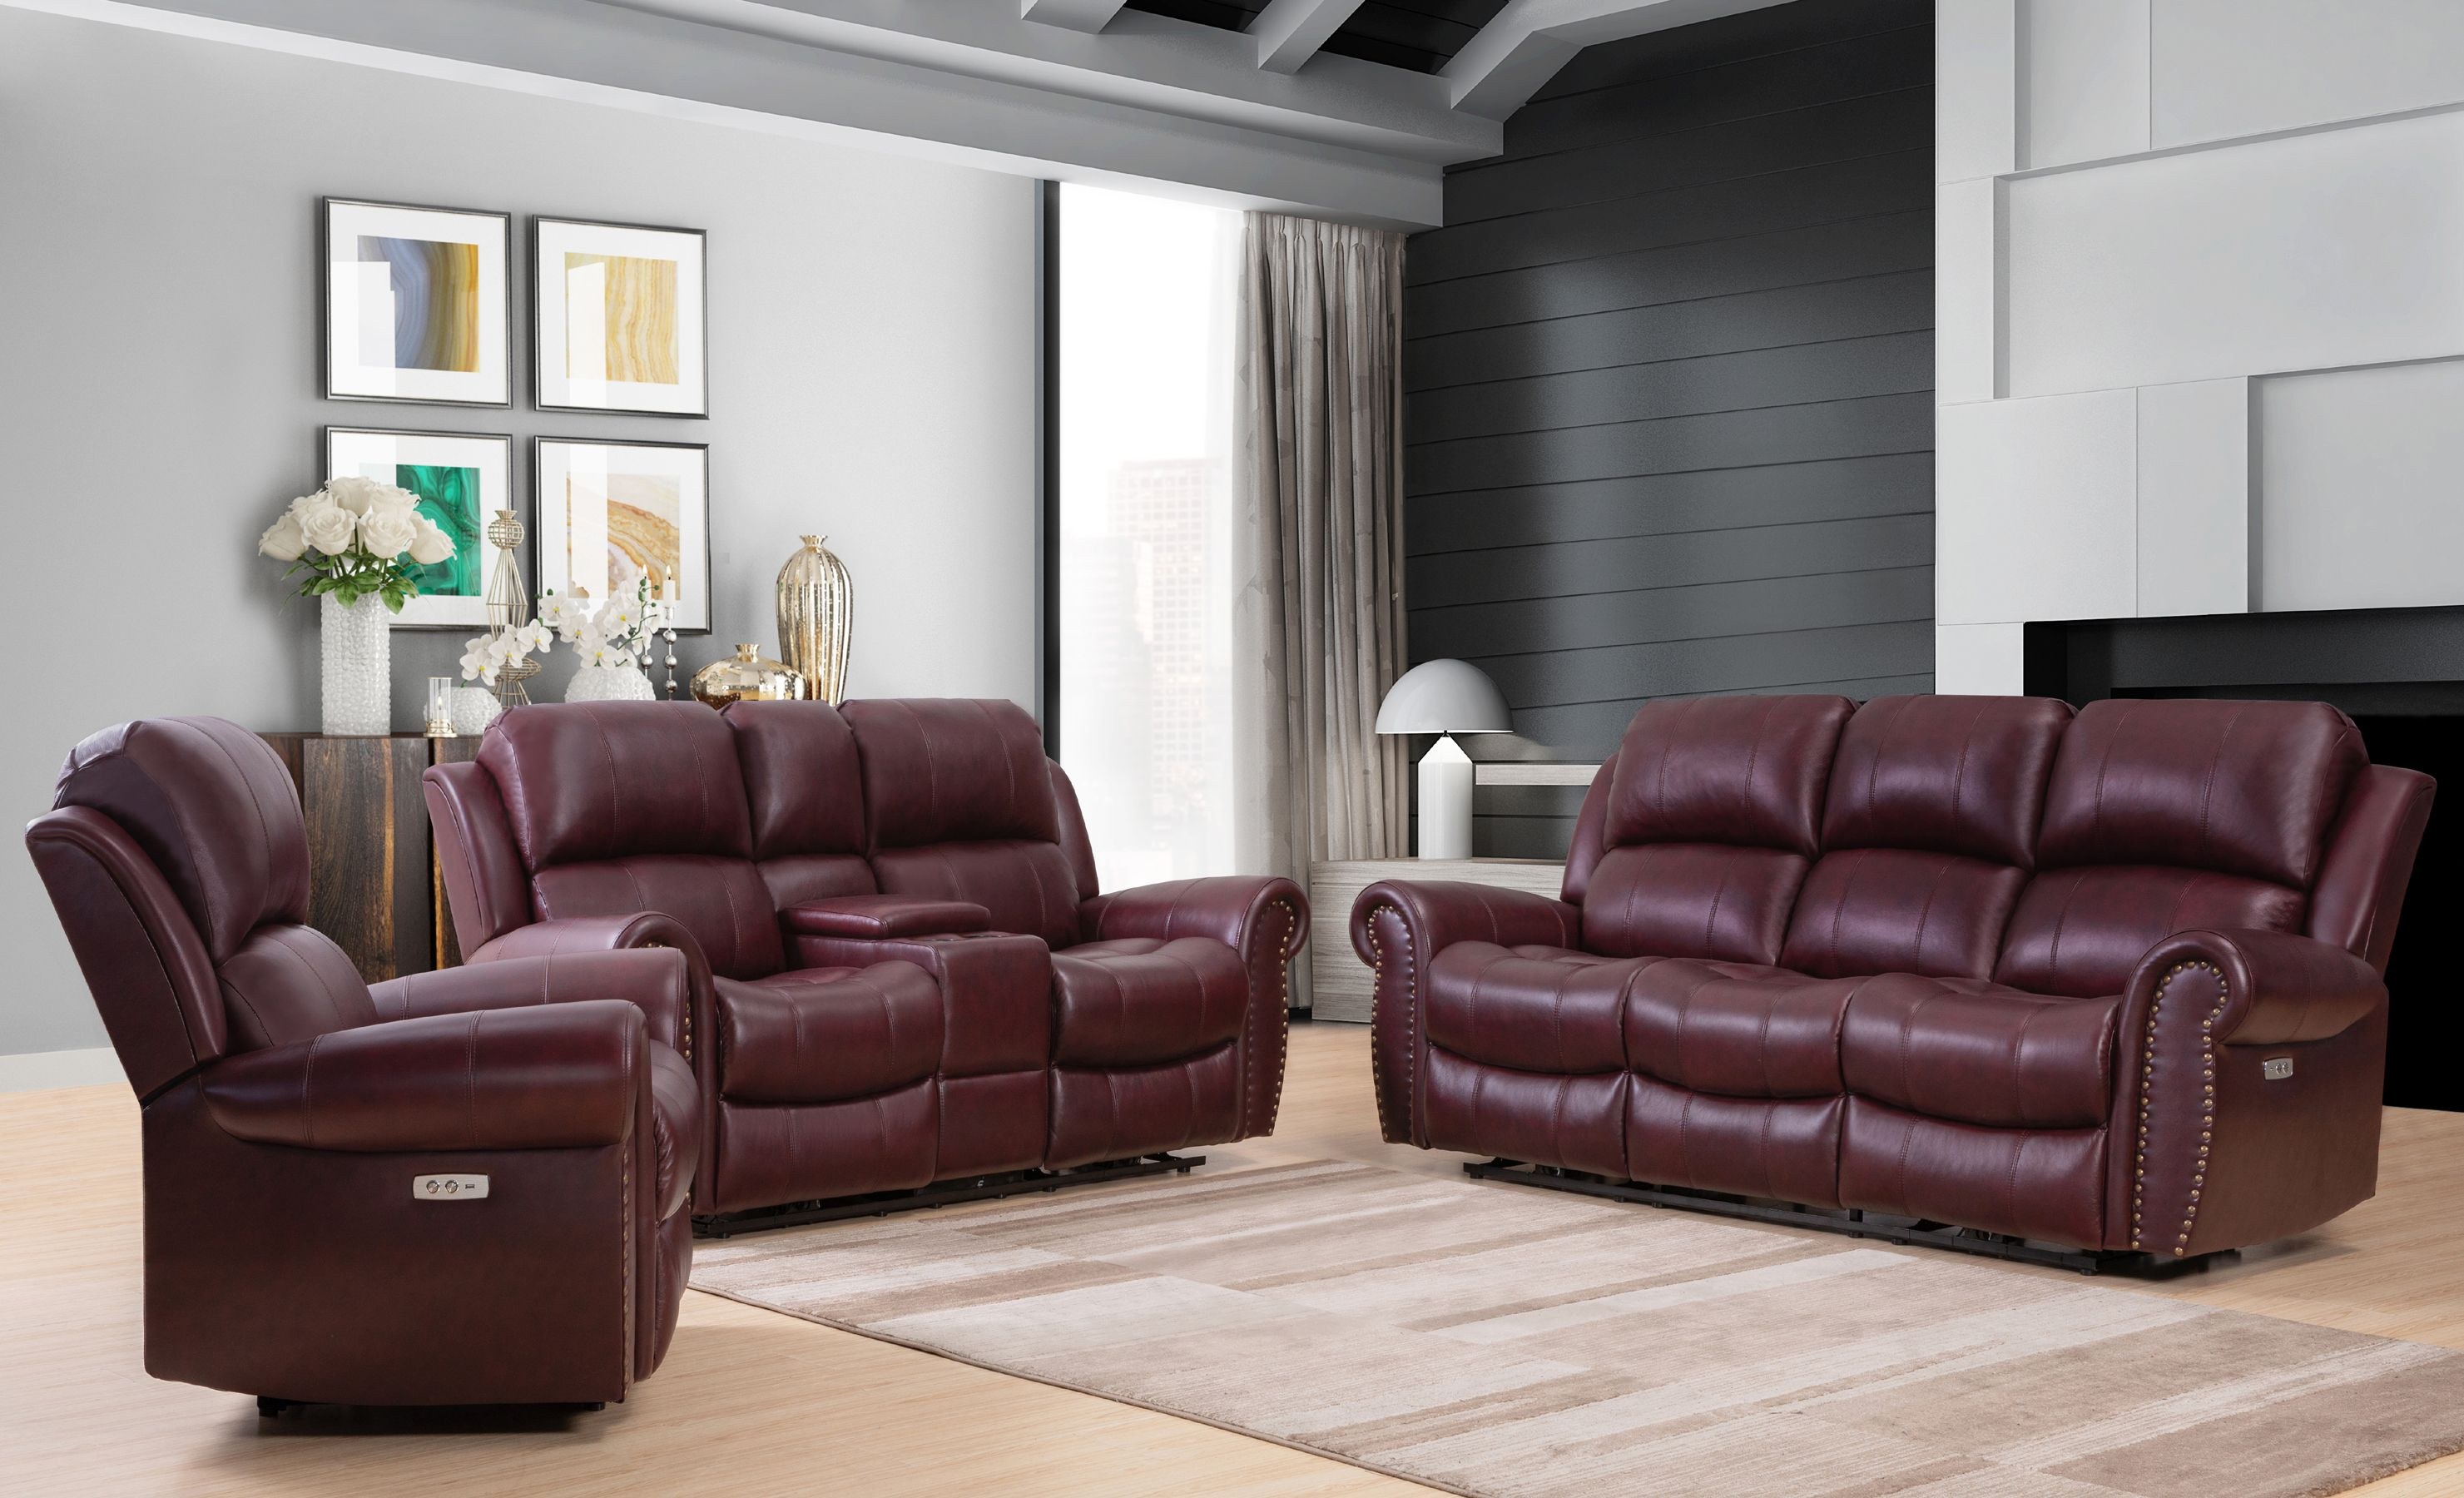 Where classic style meets modern functionality the garris 3 piece top grain leather power reclining set will add comfortable seating and easy power